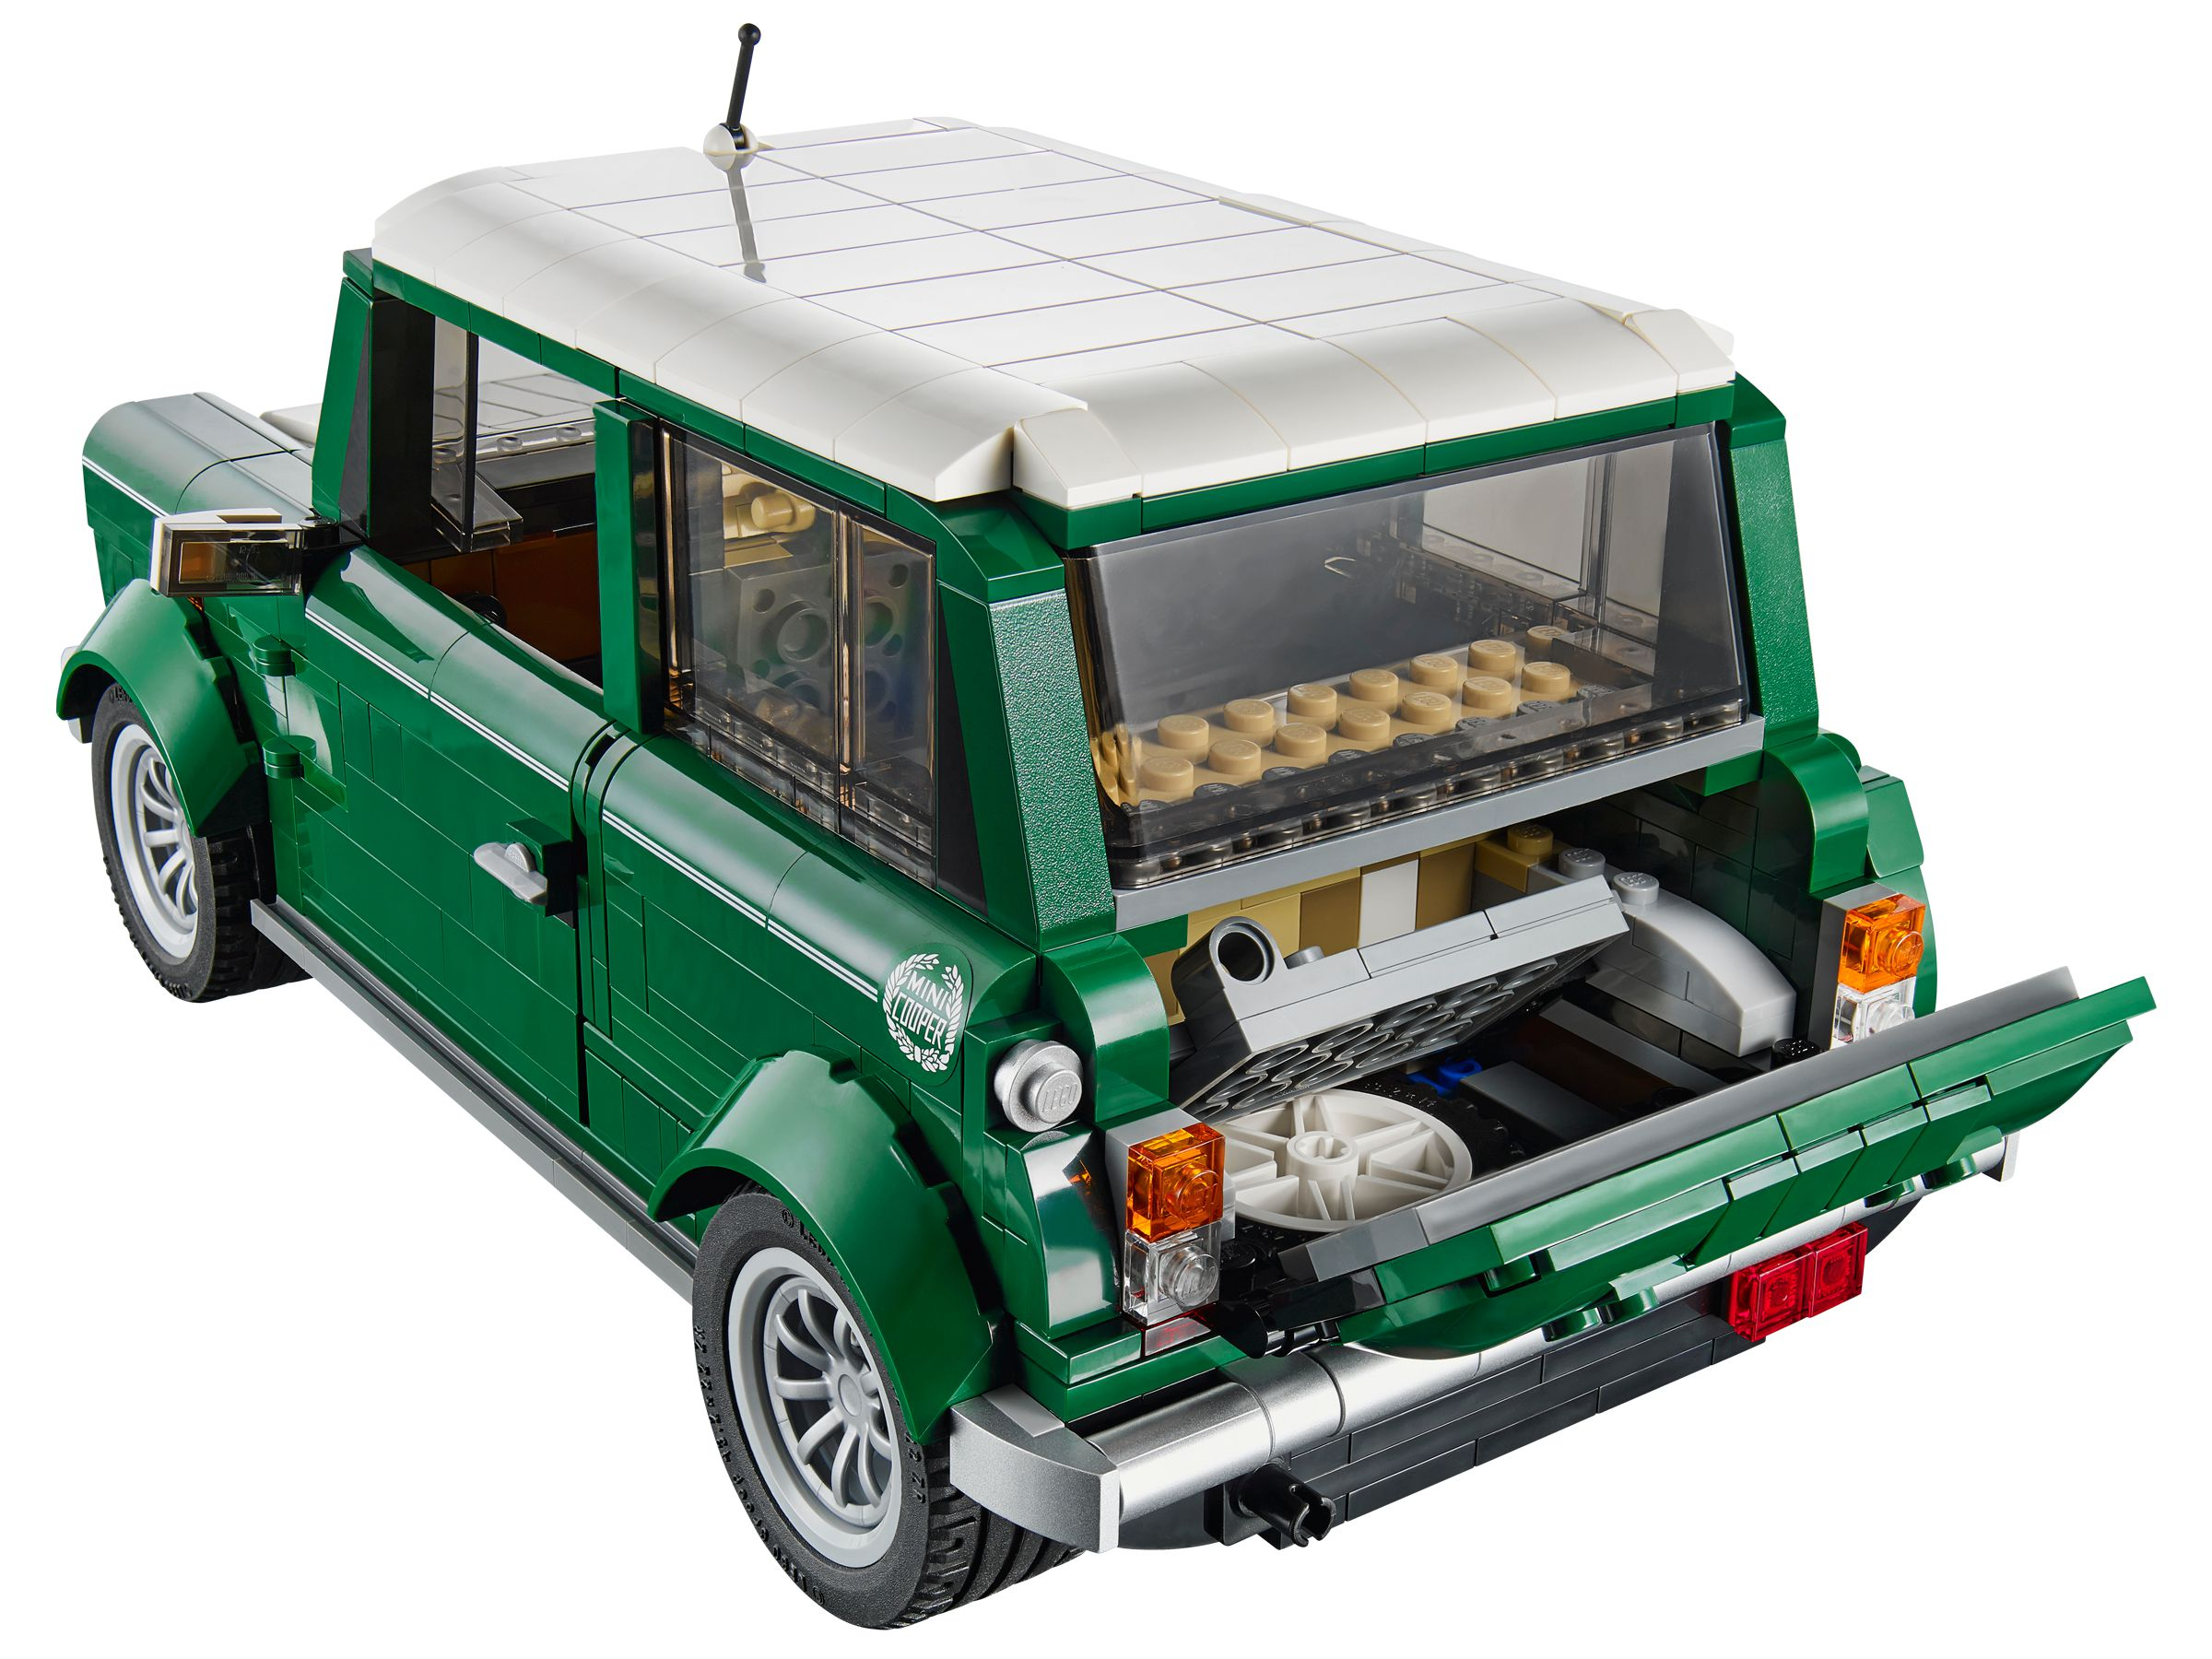 LEGO Advanced Models 10242 MINI Cooper LEGO_10242_alt4.jpg